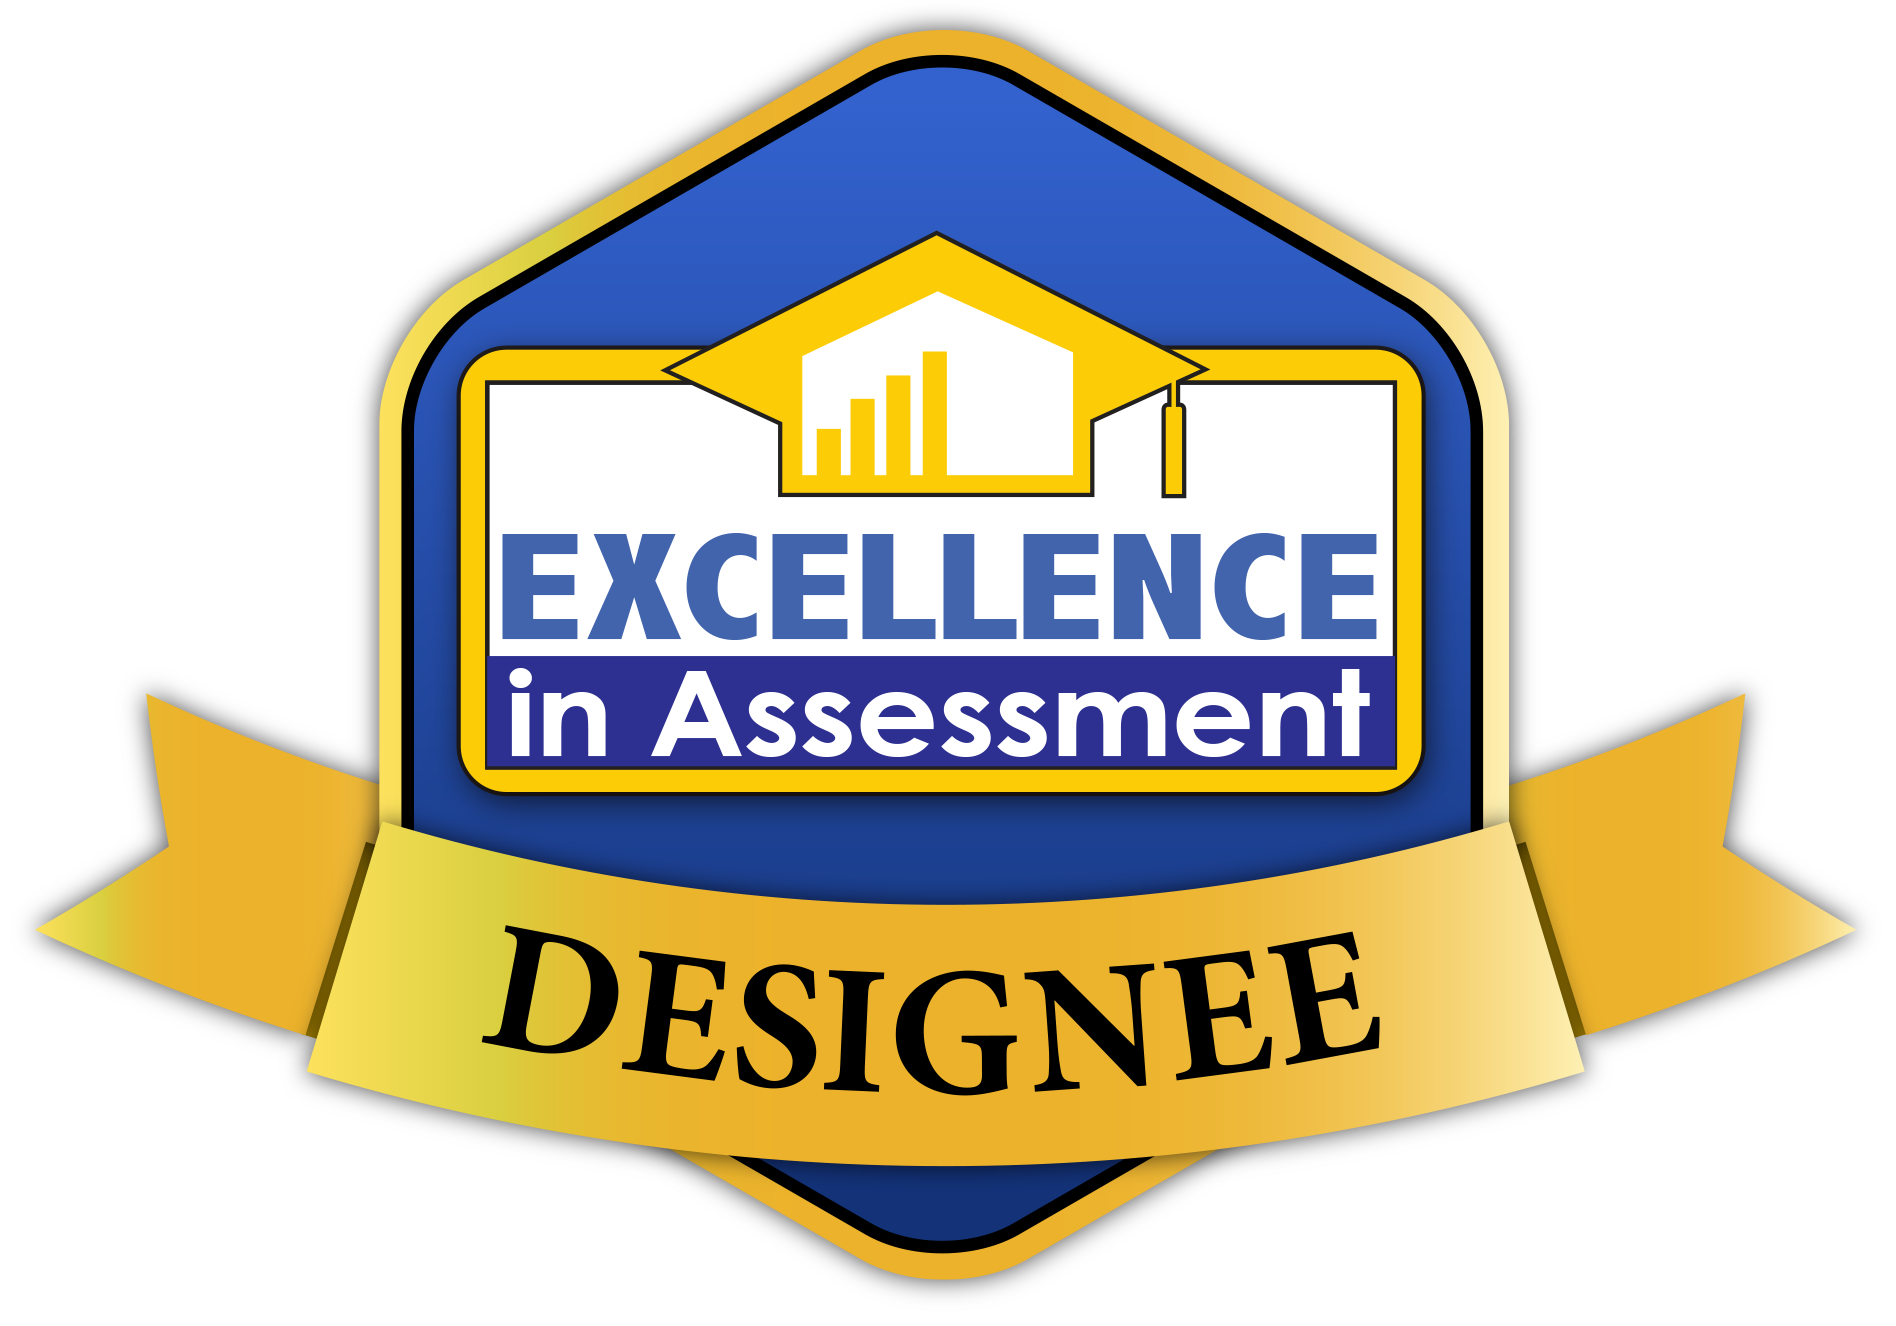 Excellence in Assessment Designee badge